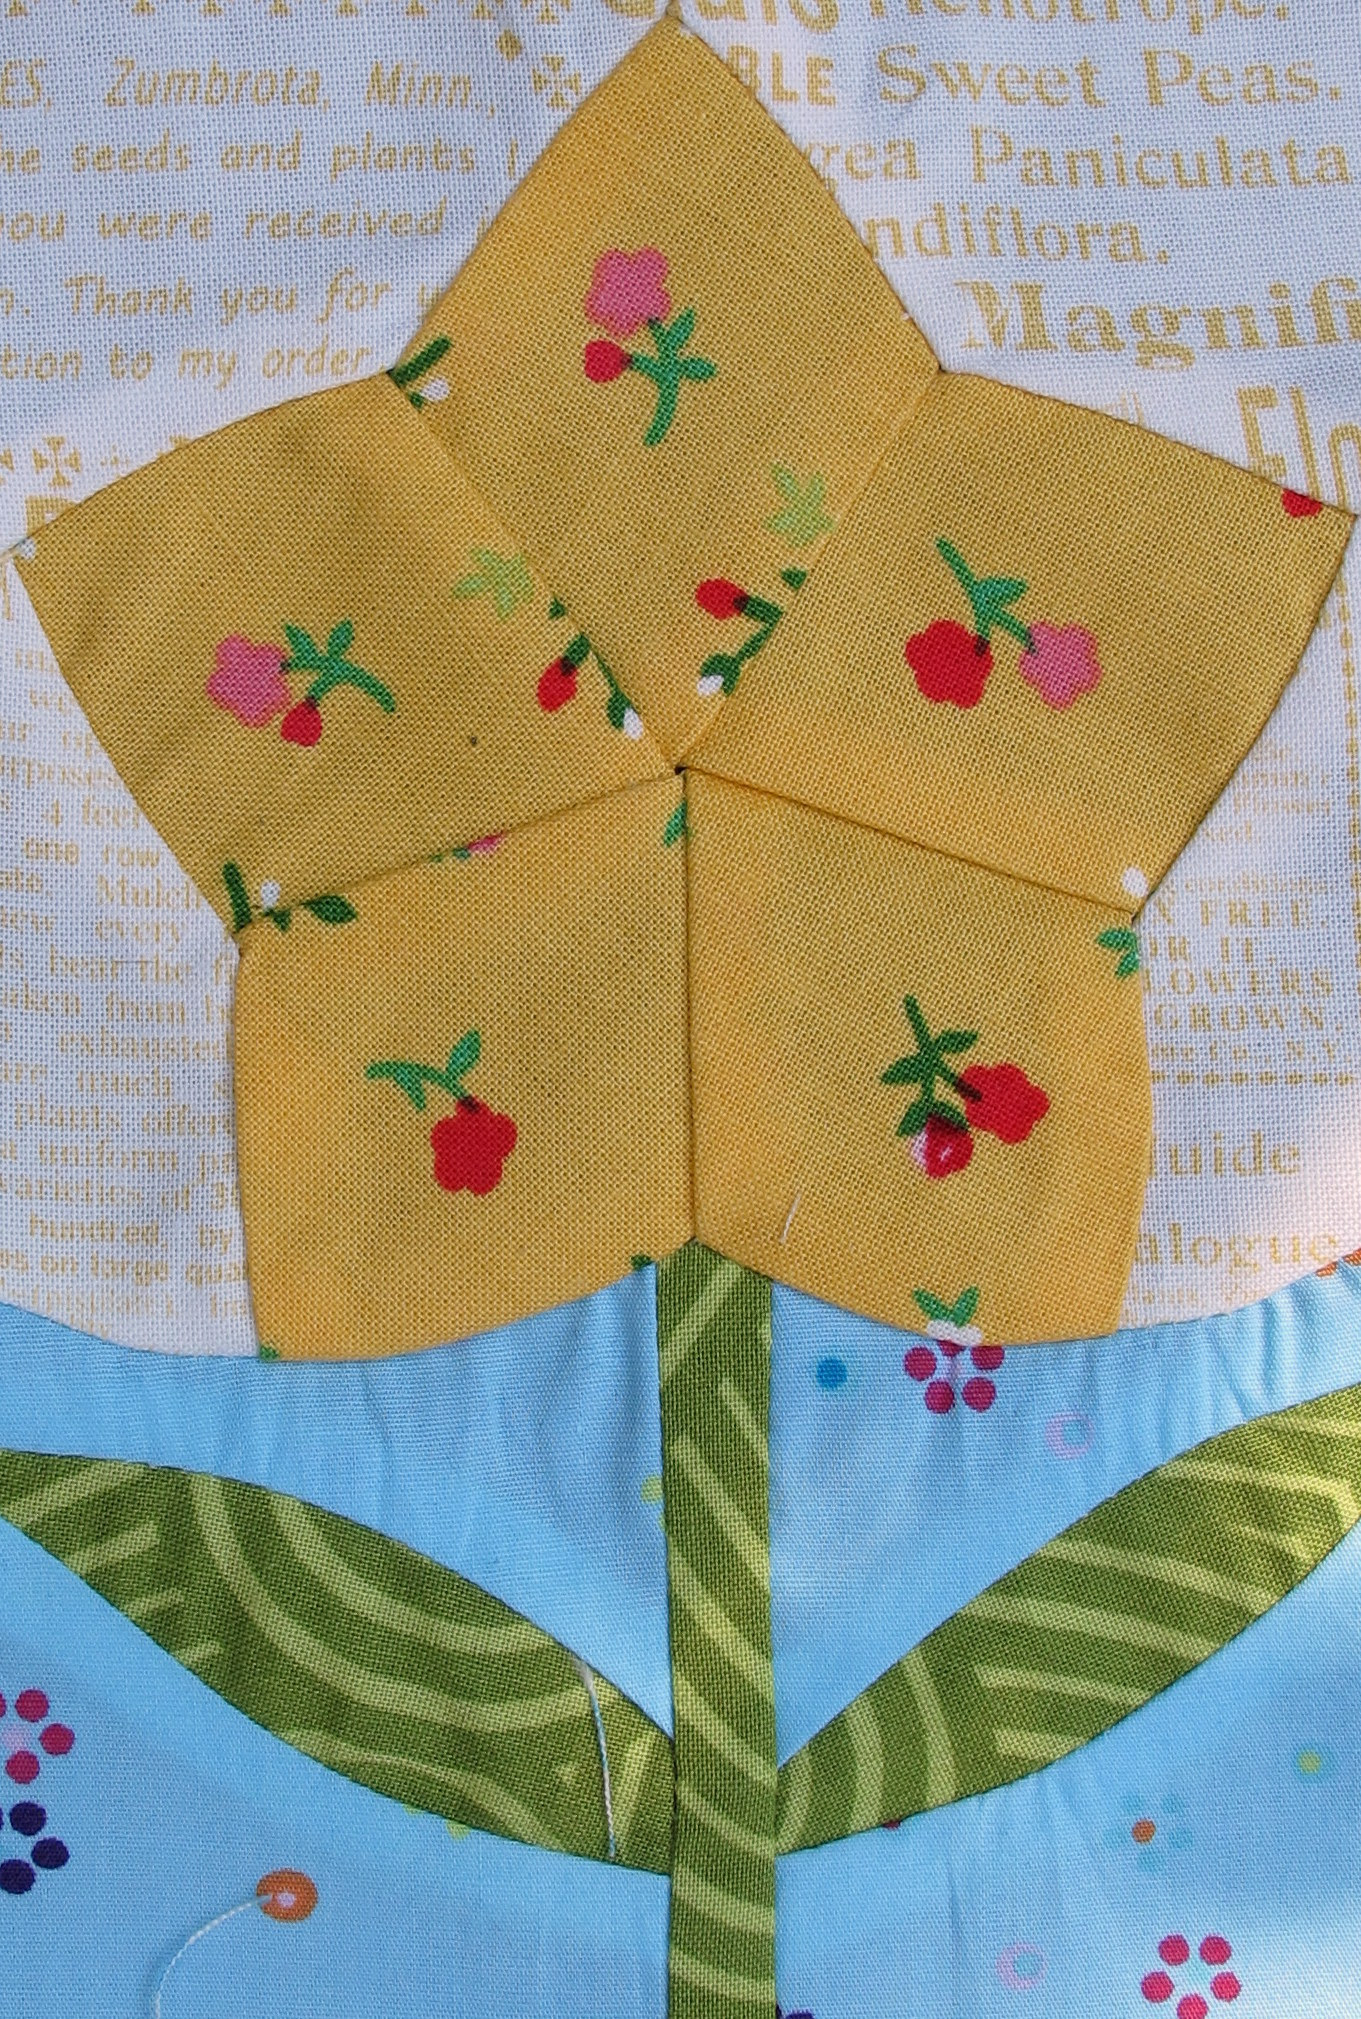 Green tea flower blocks